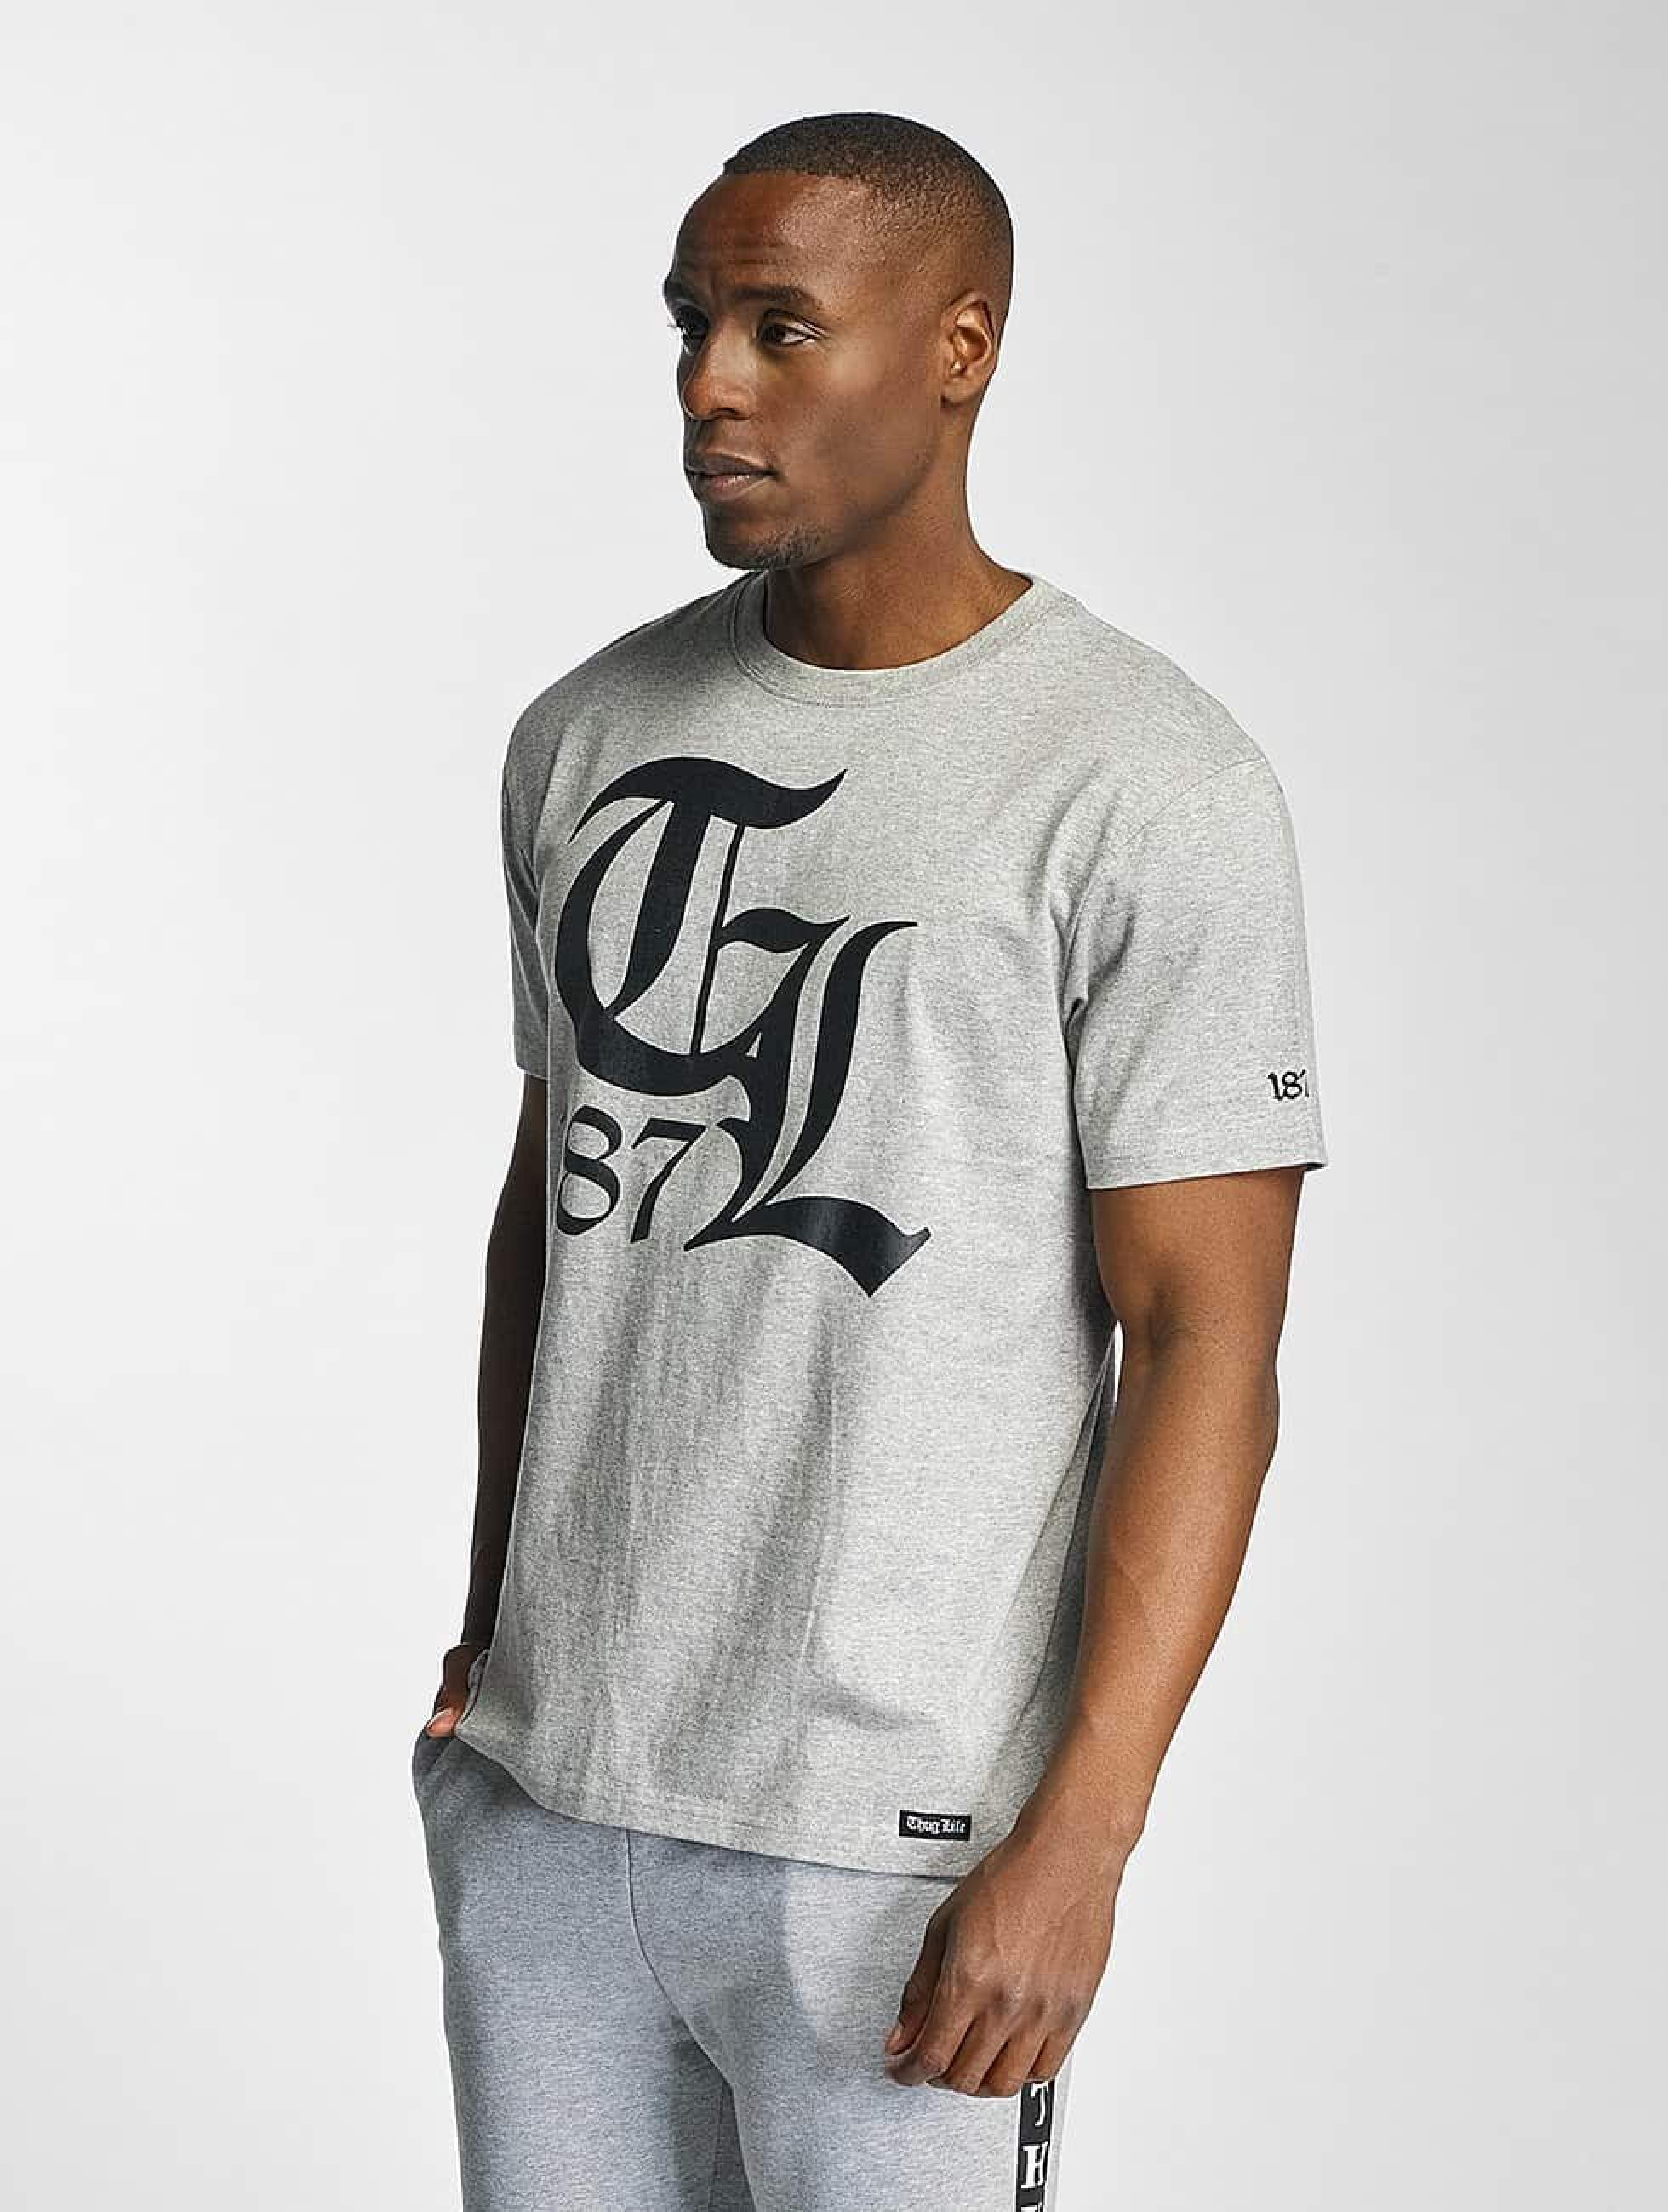 Thug Life / T-Shirt Mellow in grey M